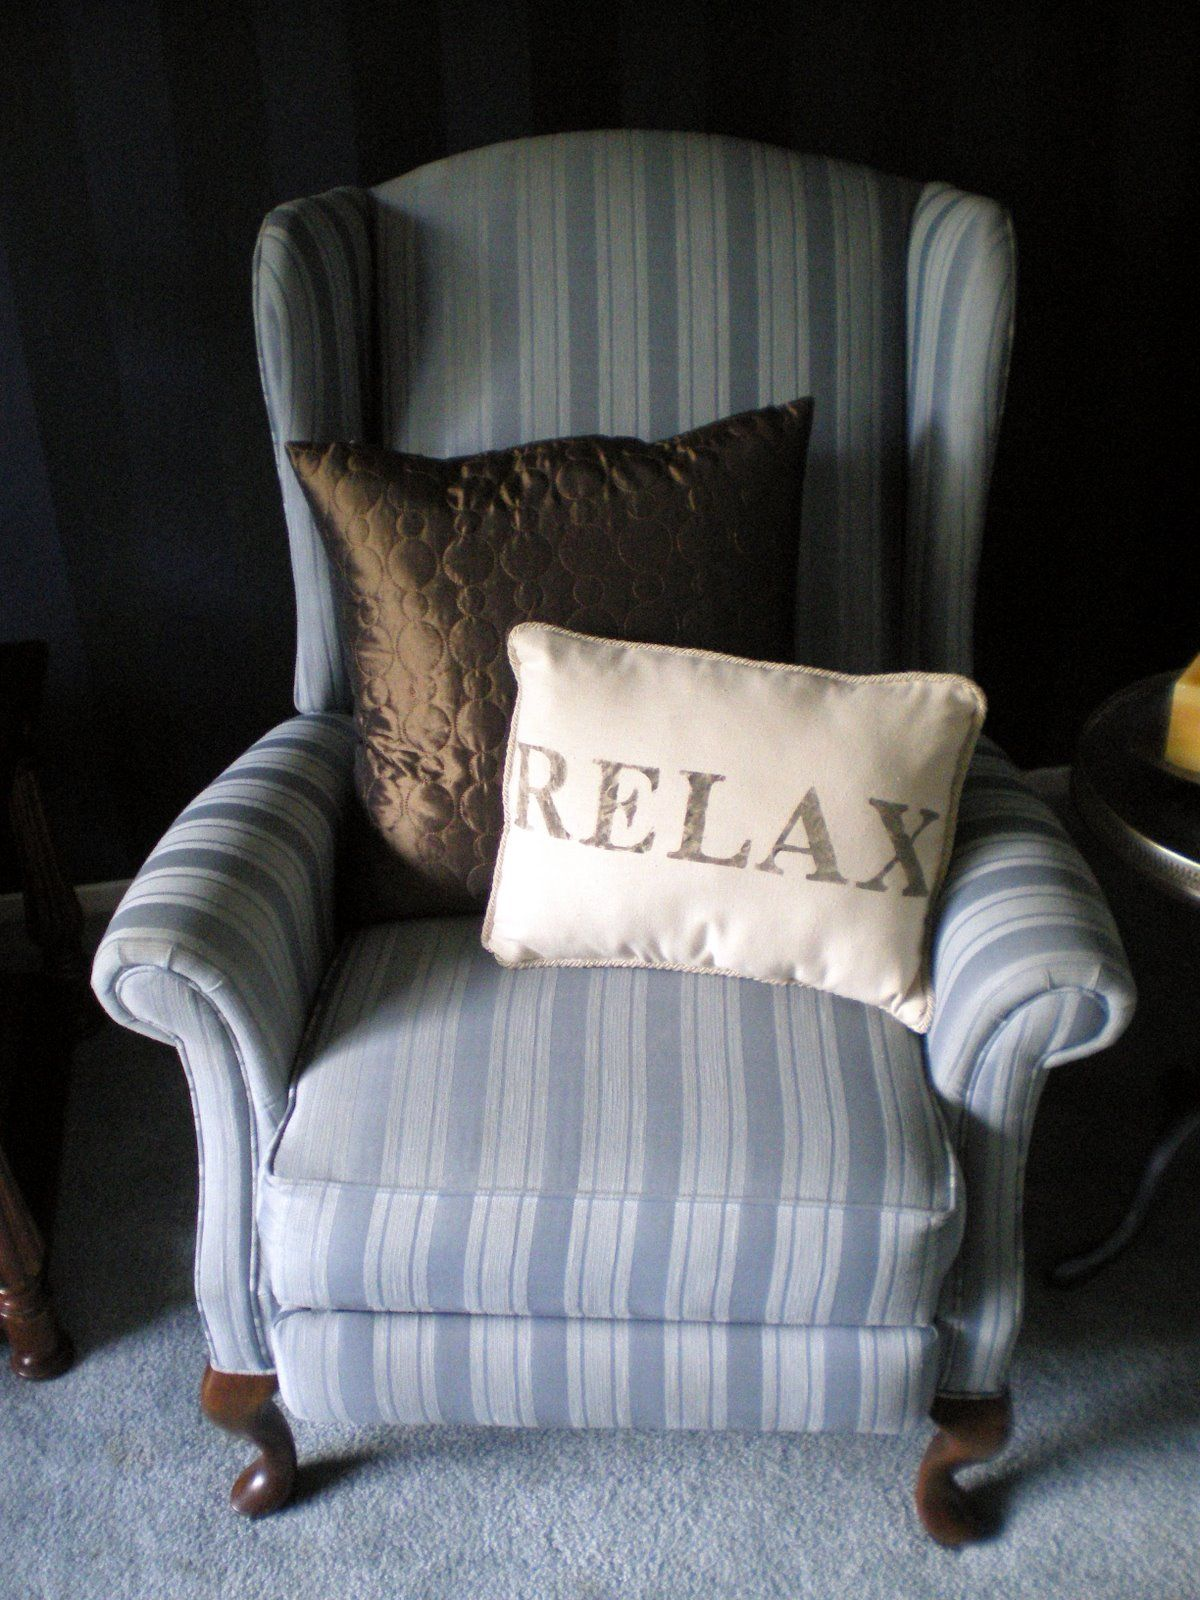 Live Creative Or Diy Trying Sit Relax Relax Pillows Knock Off Decor